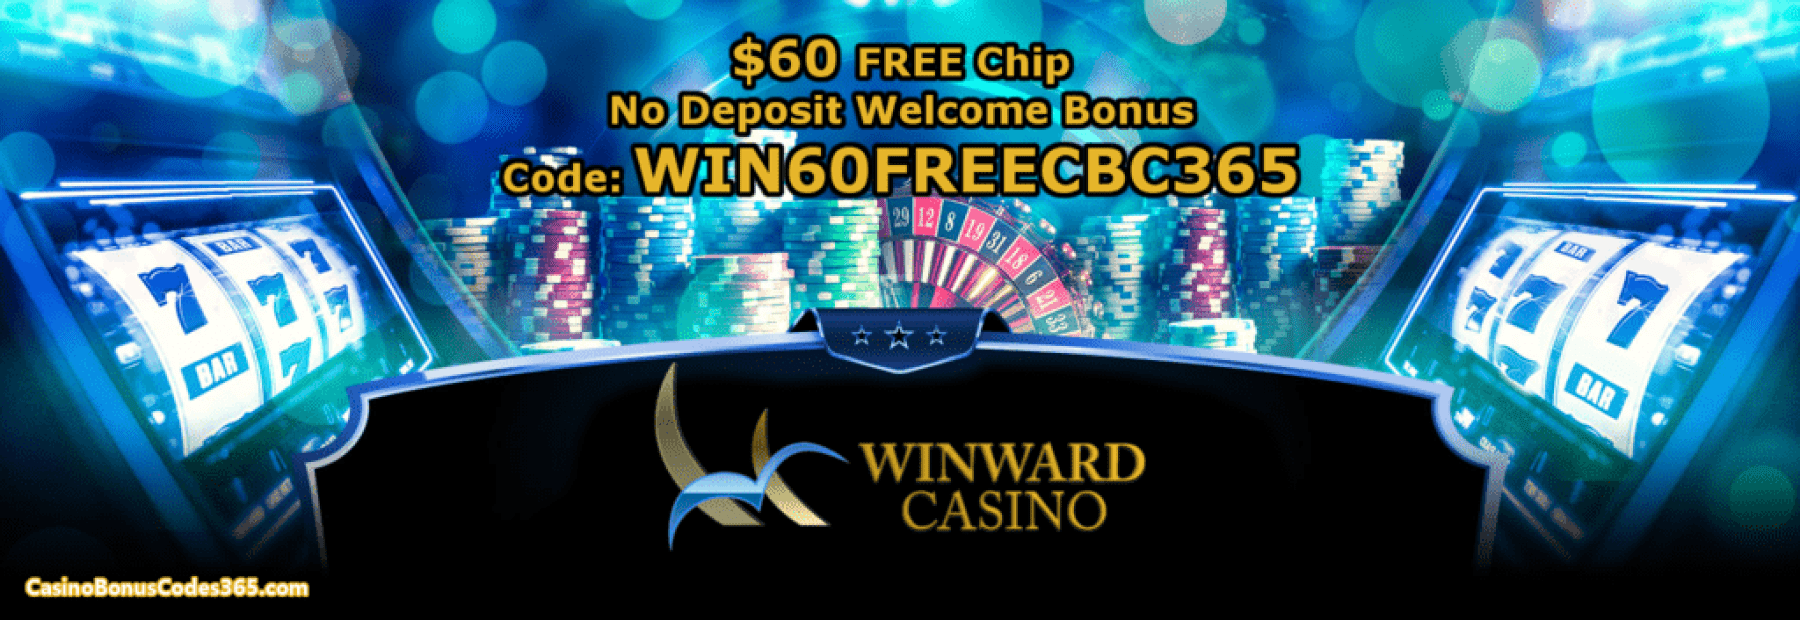 Winward Casino $60 FREE Chip No Deposit Welcome Bonus